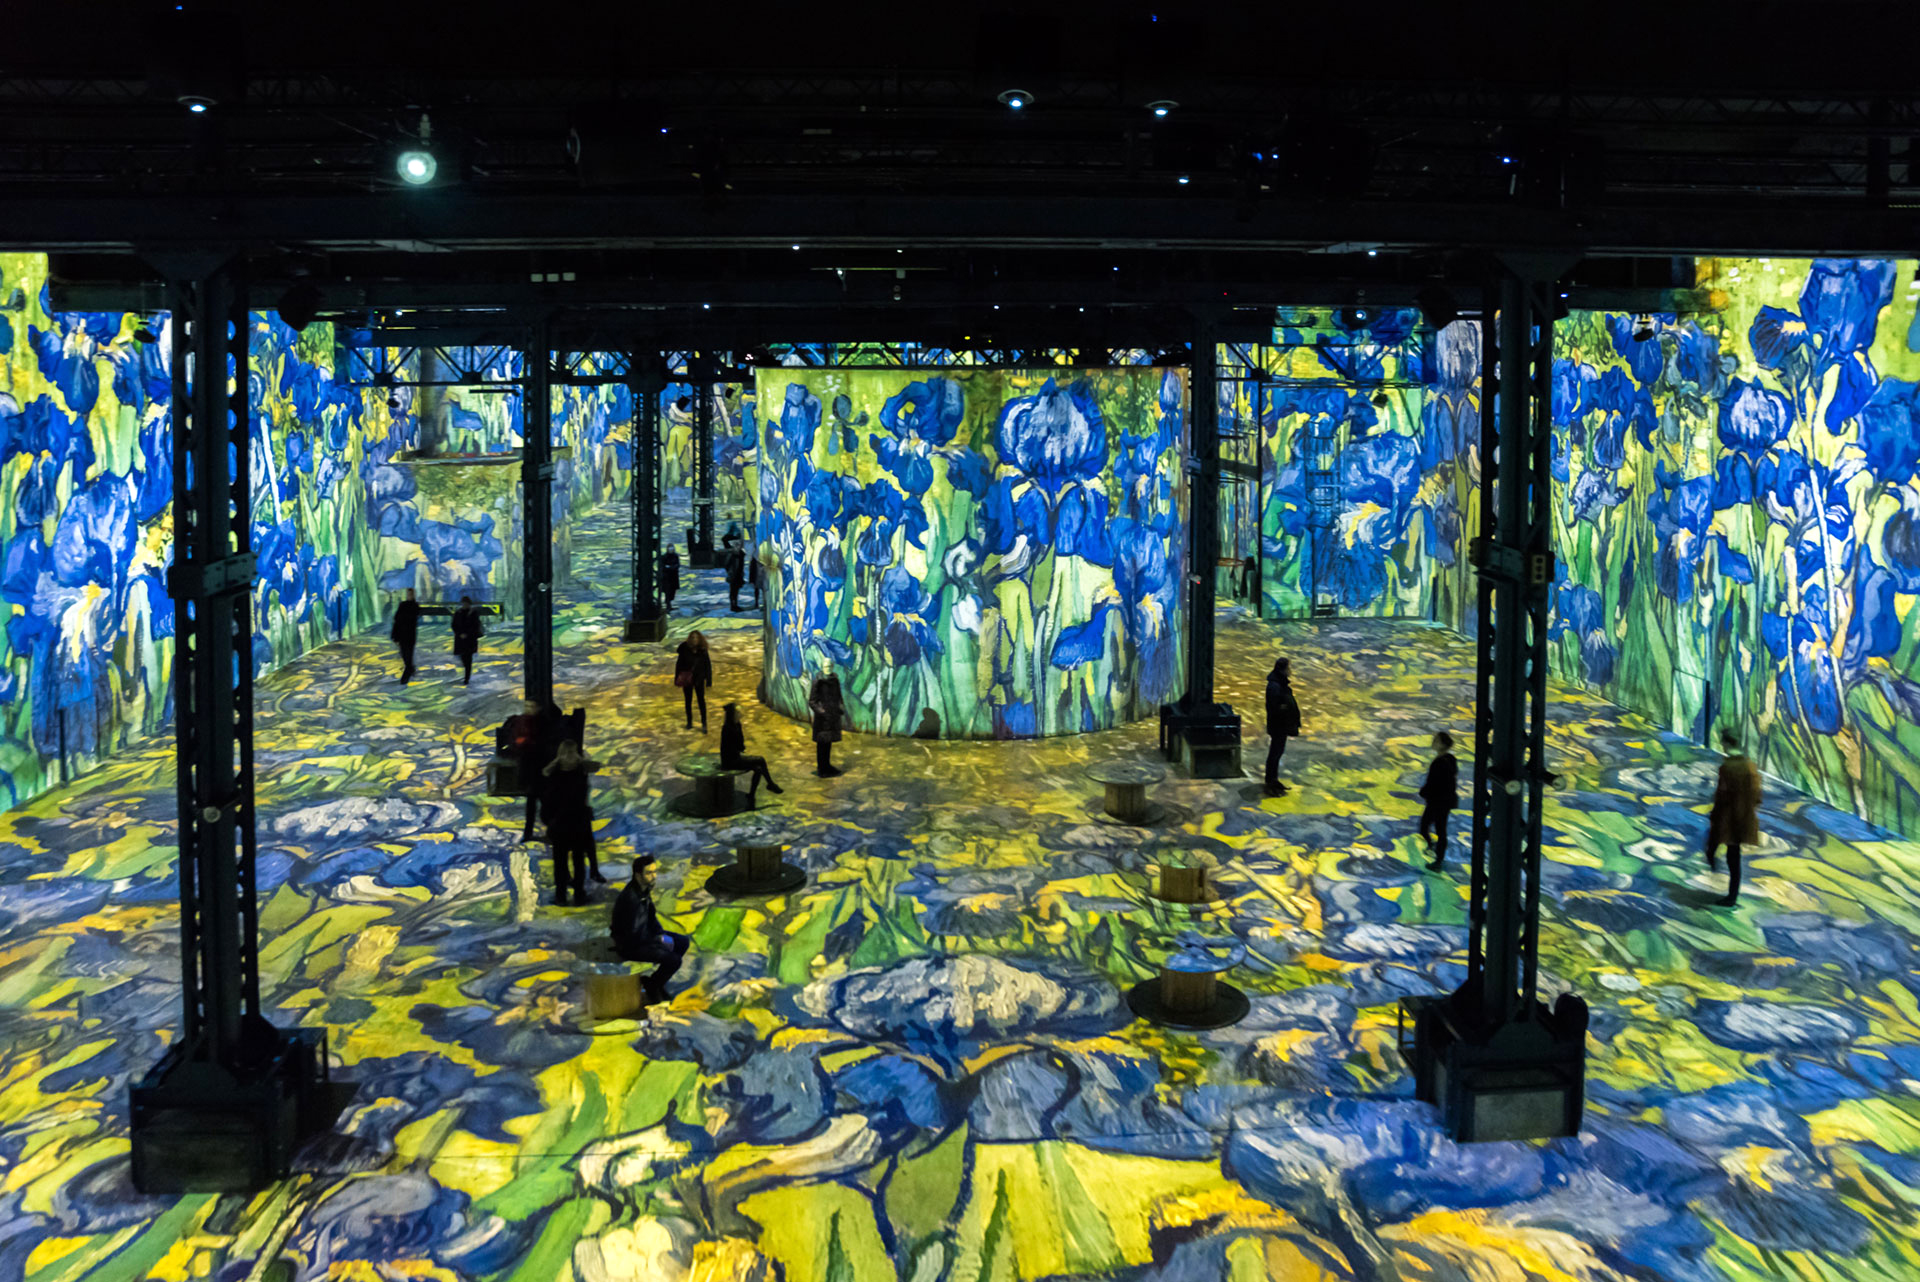 Simulation of the exhibition Gustav Klimt, Installation view 4| Gustav Klimt | Atelier des Lumières | STIR